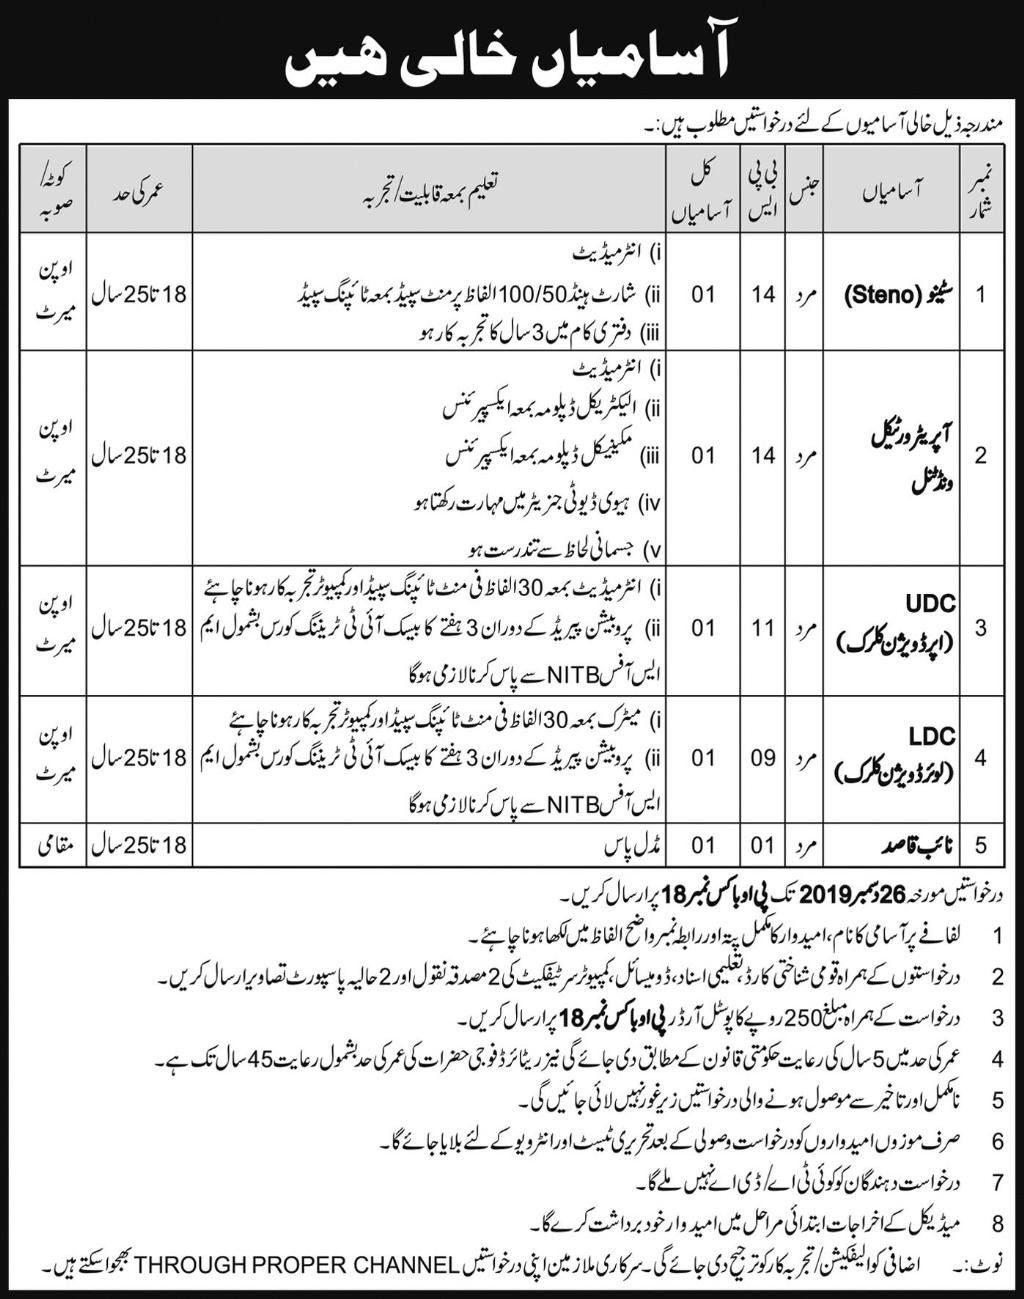 Public Sector Organization PO Box 18 Clerical Staff Jobs 2020